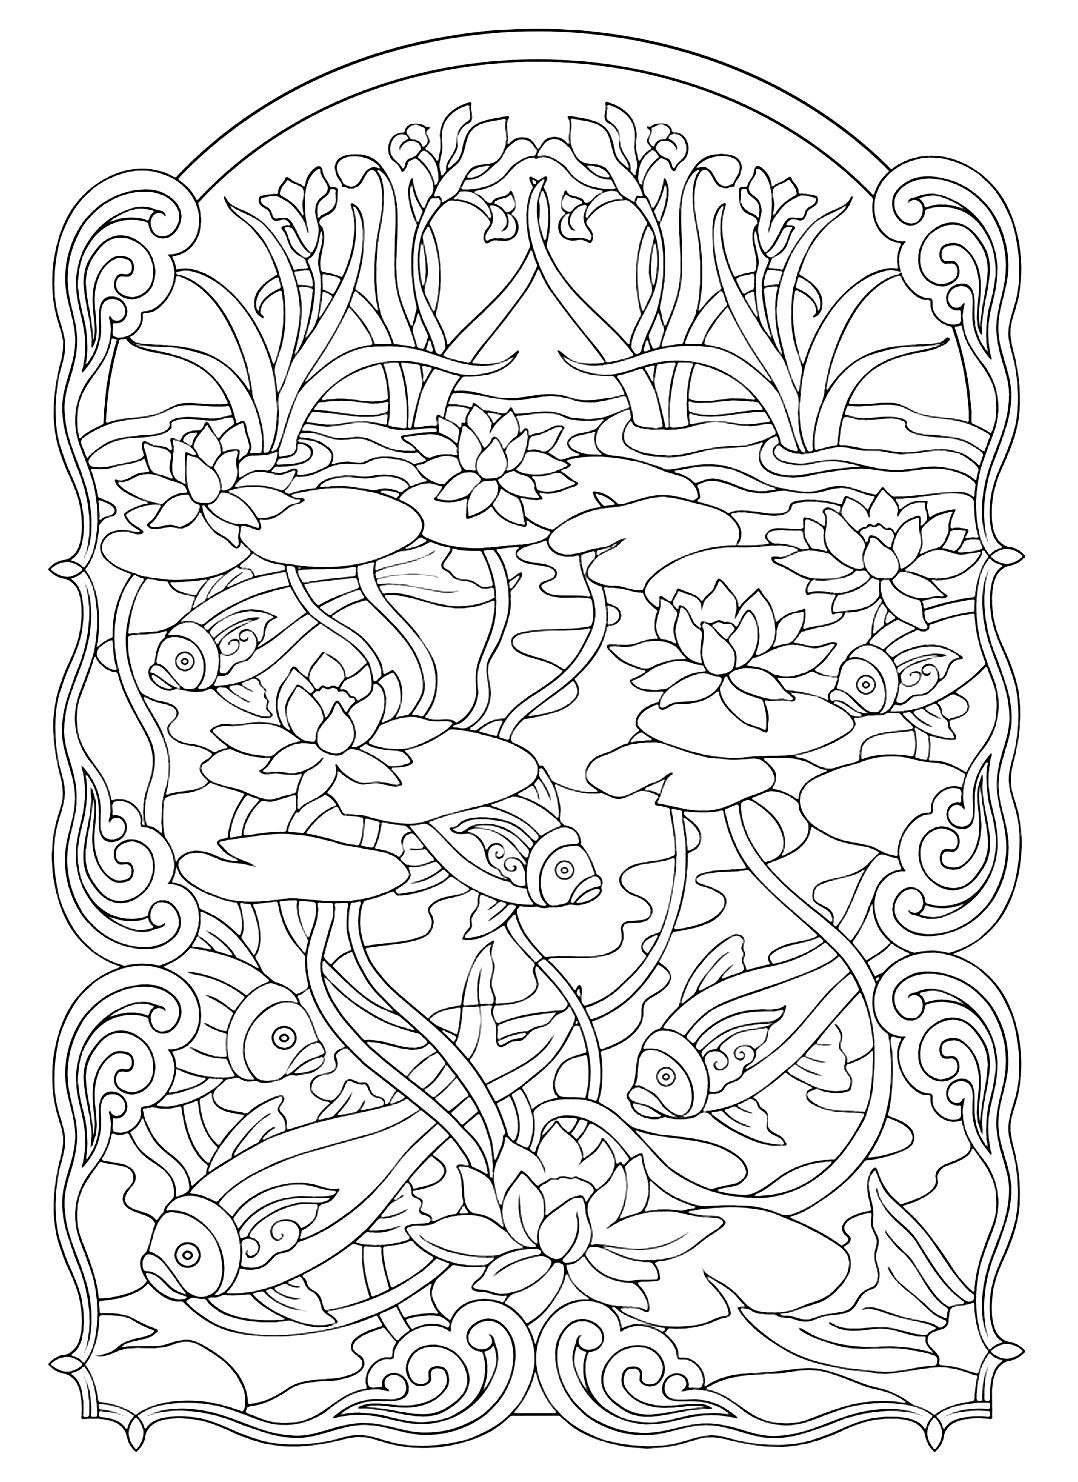 Pond Fish Coloring Pages